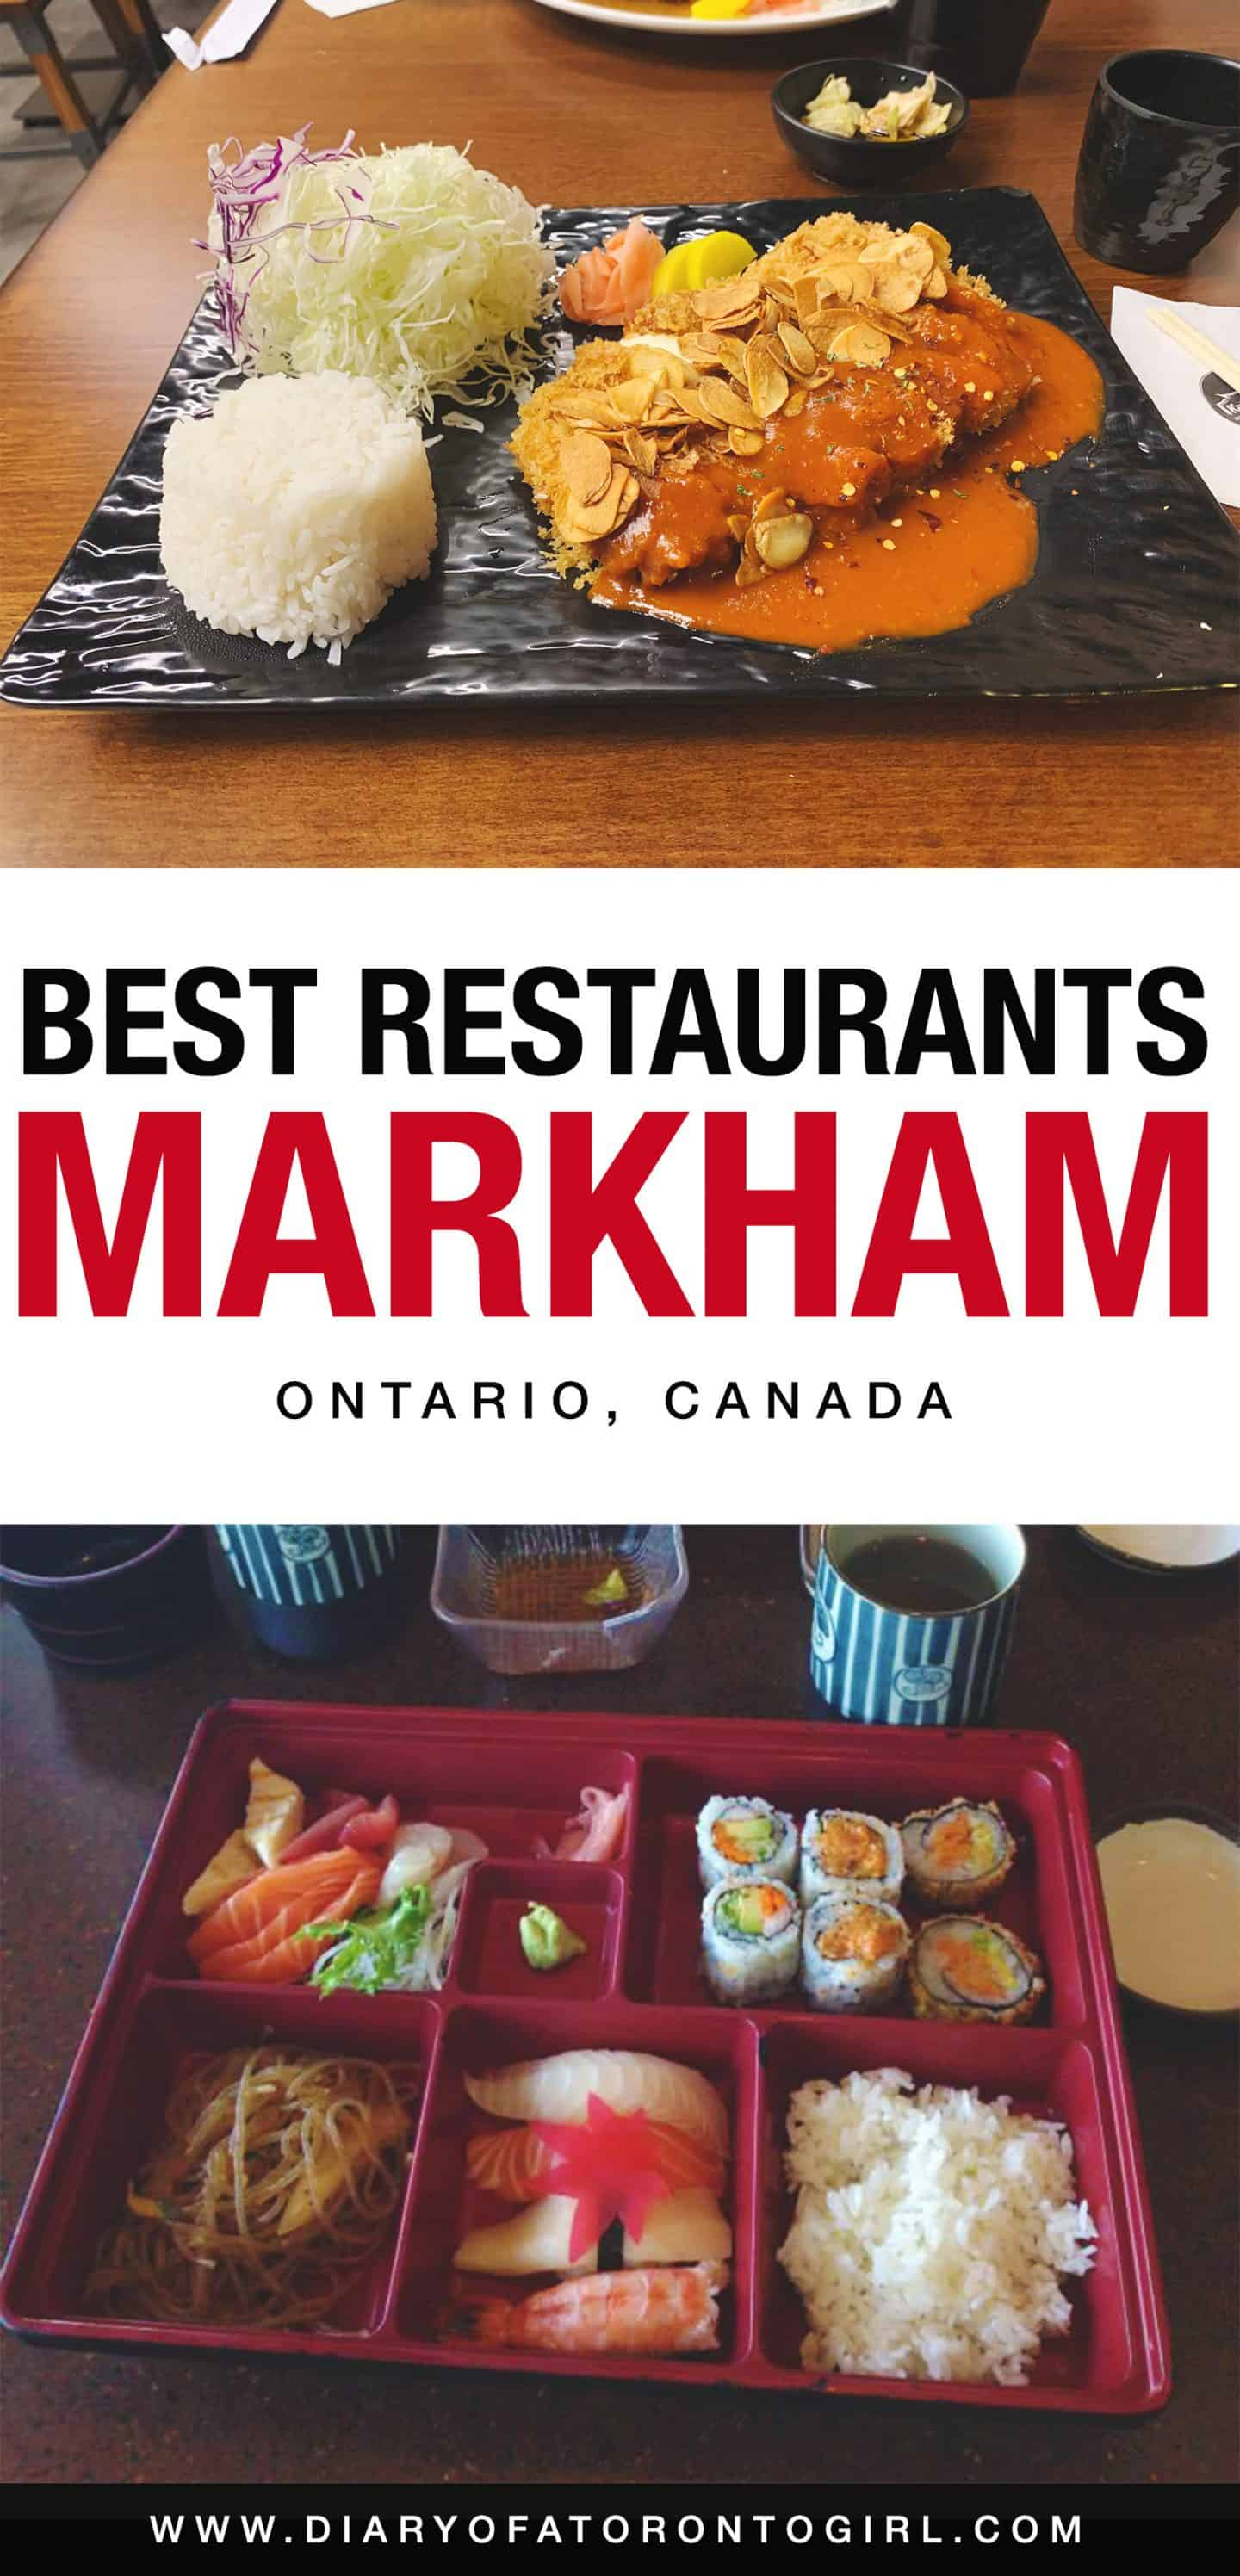 Looking for the best places to eat in Markham? Here are the top restaurants to check out in the city of Markham, Ontario!